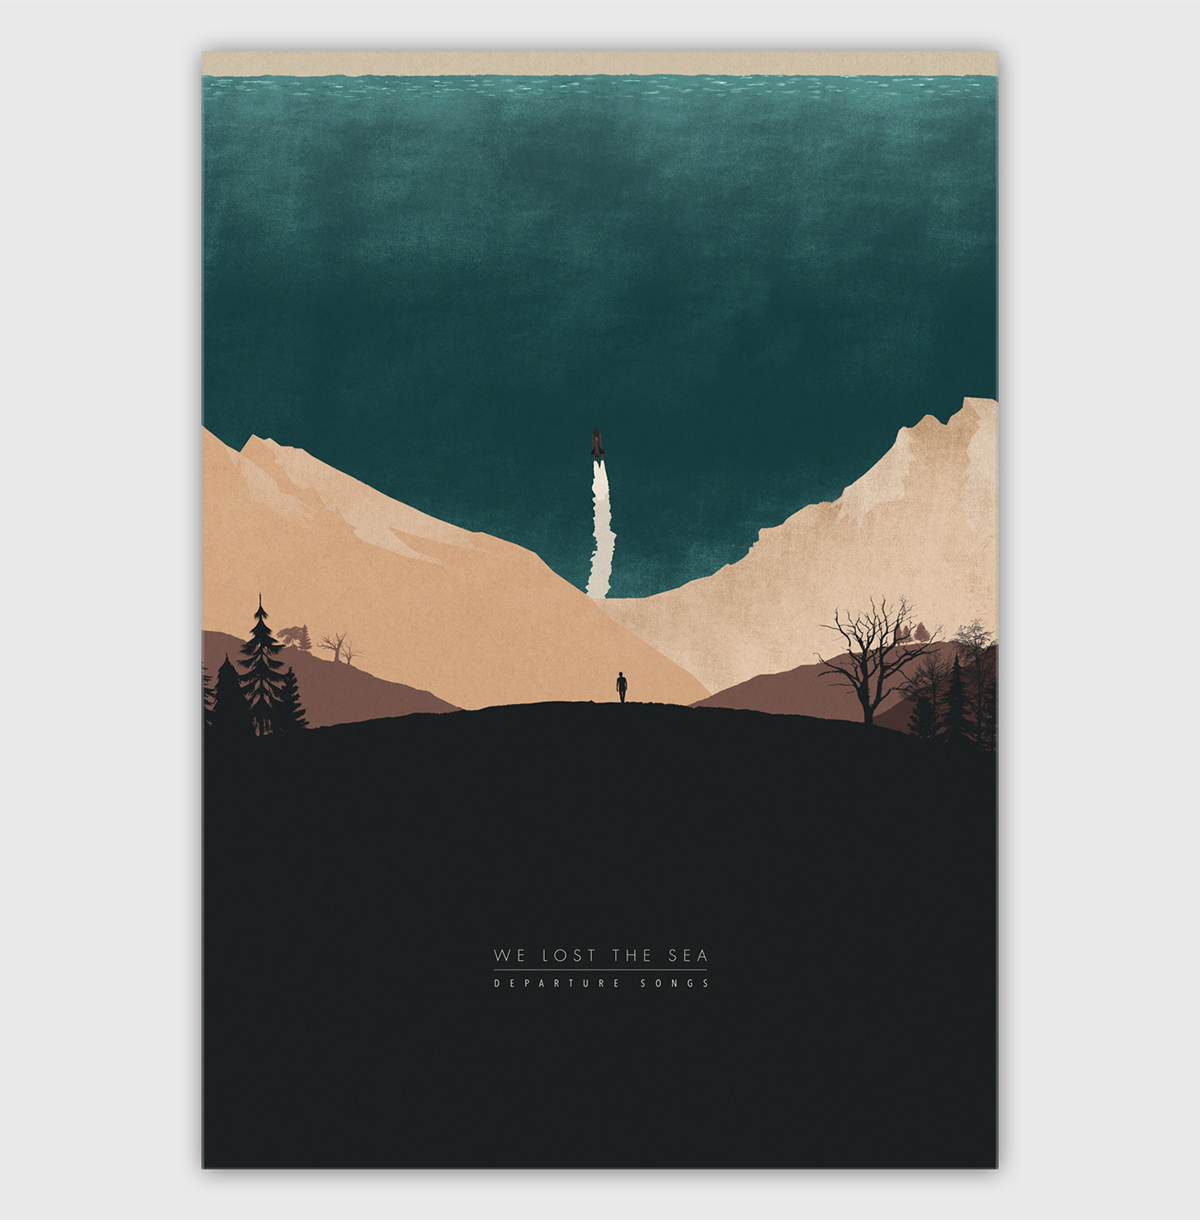 welostthesea music art Silhouettes landscapes Vector Landscapes epic mountains chernobyl Record Covers album art